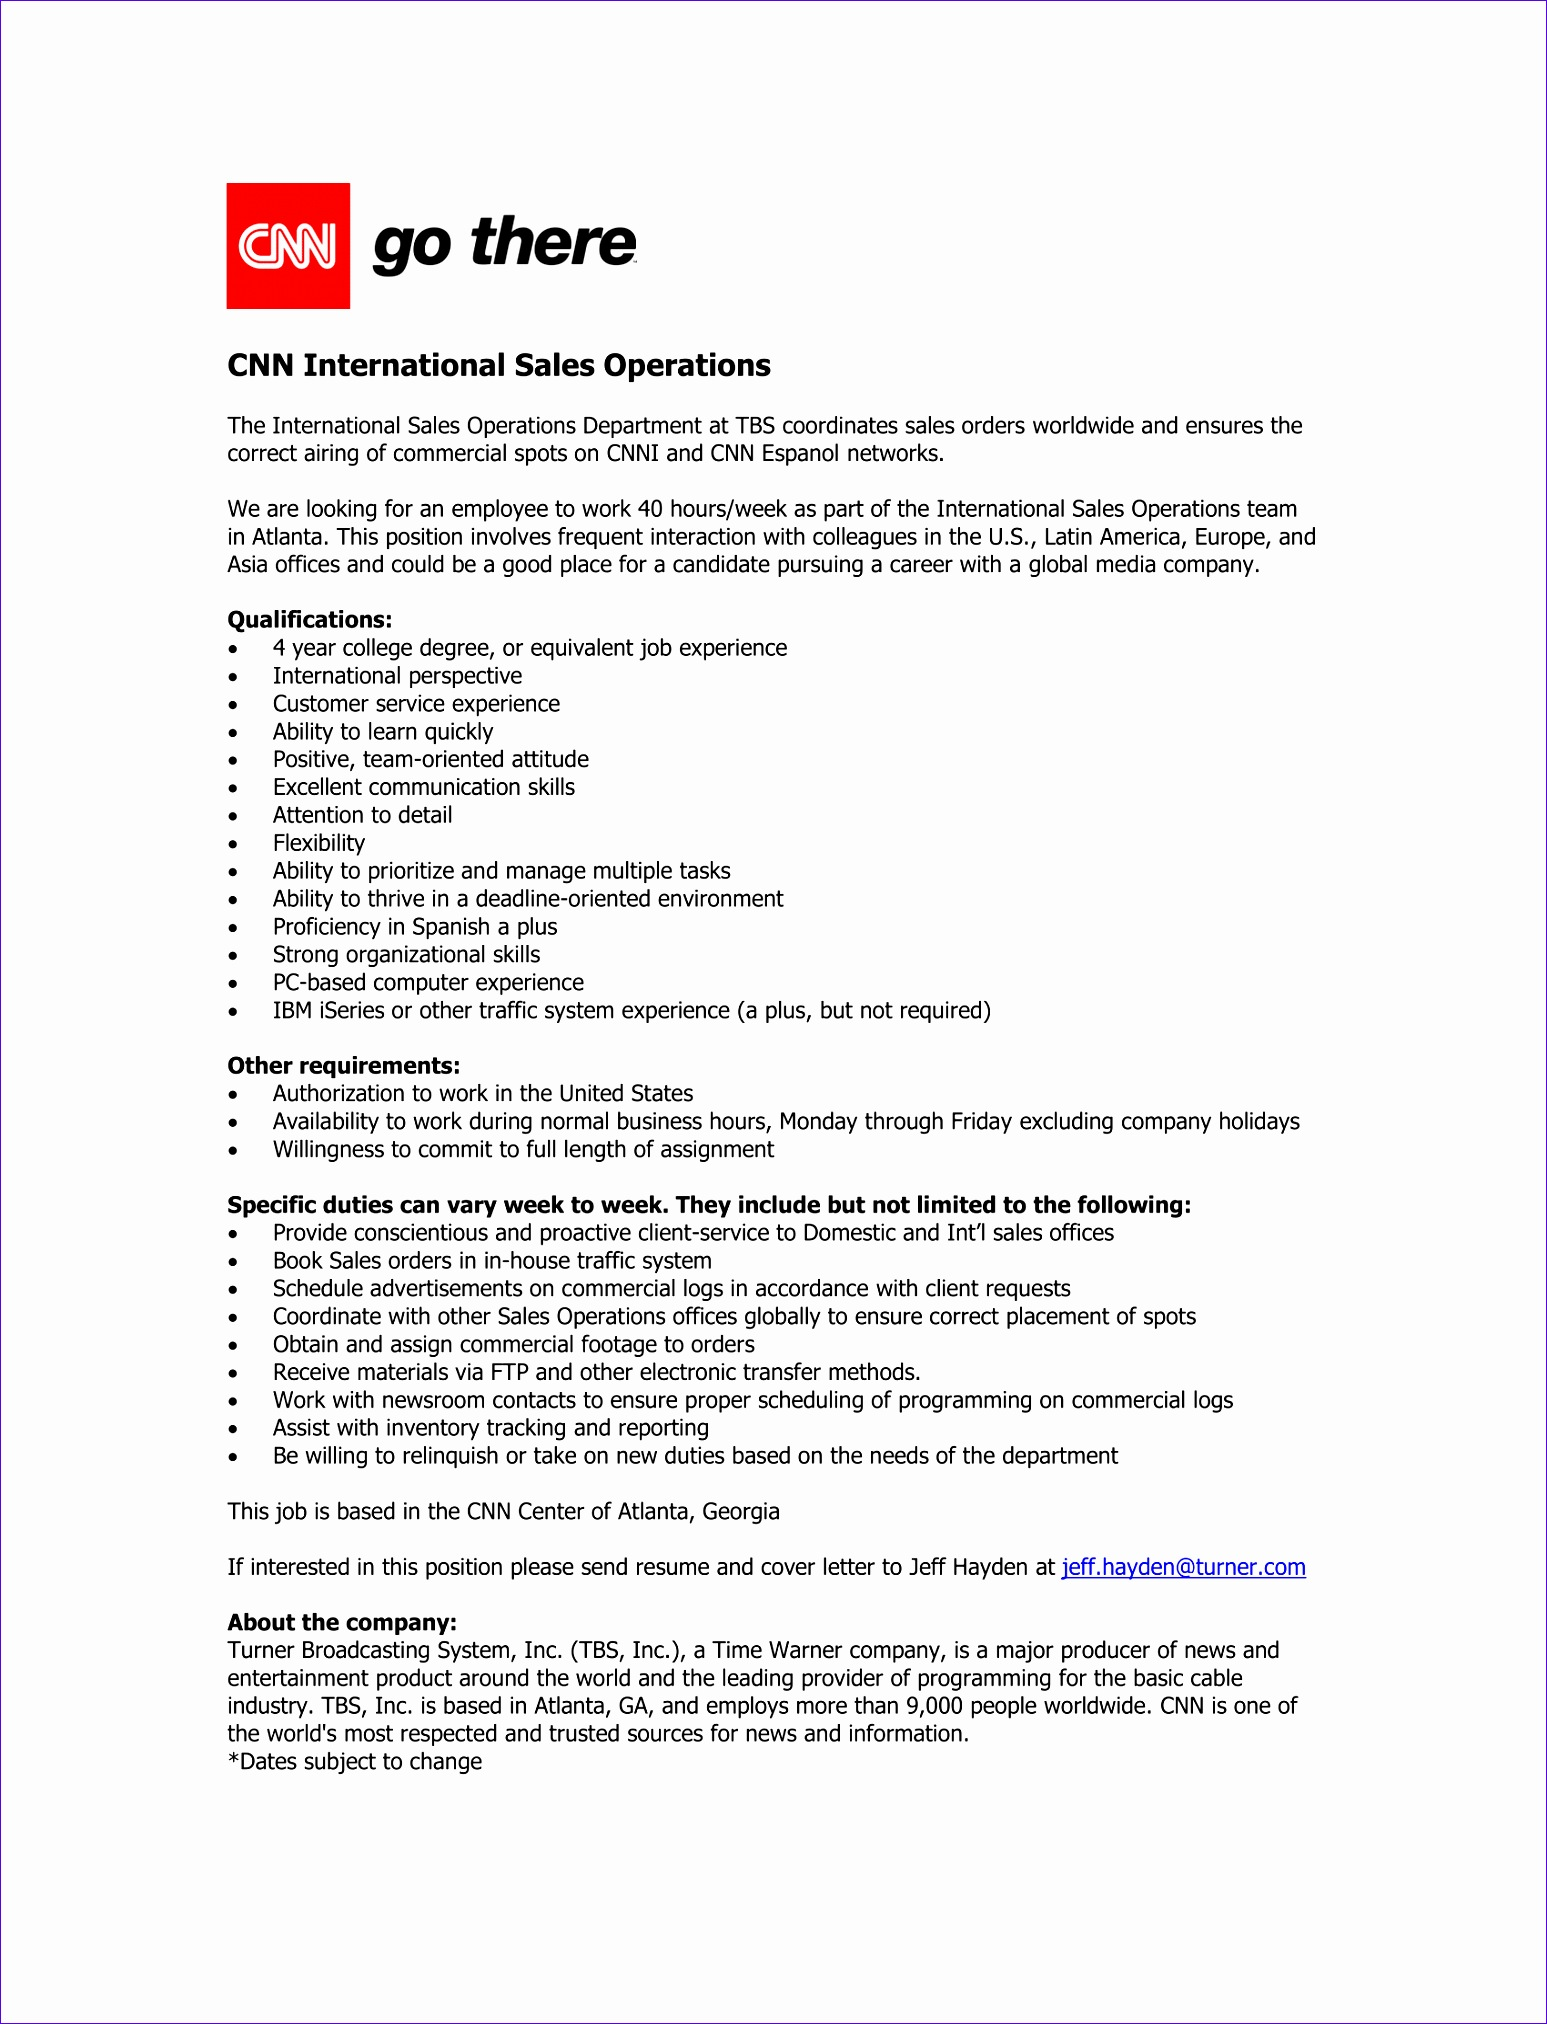 CNNI Sales Operations Job Ad 2016 1